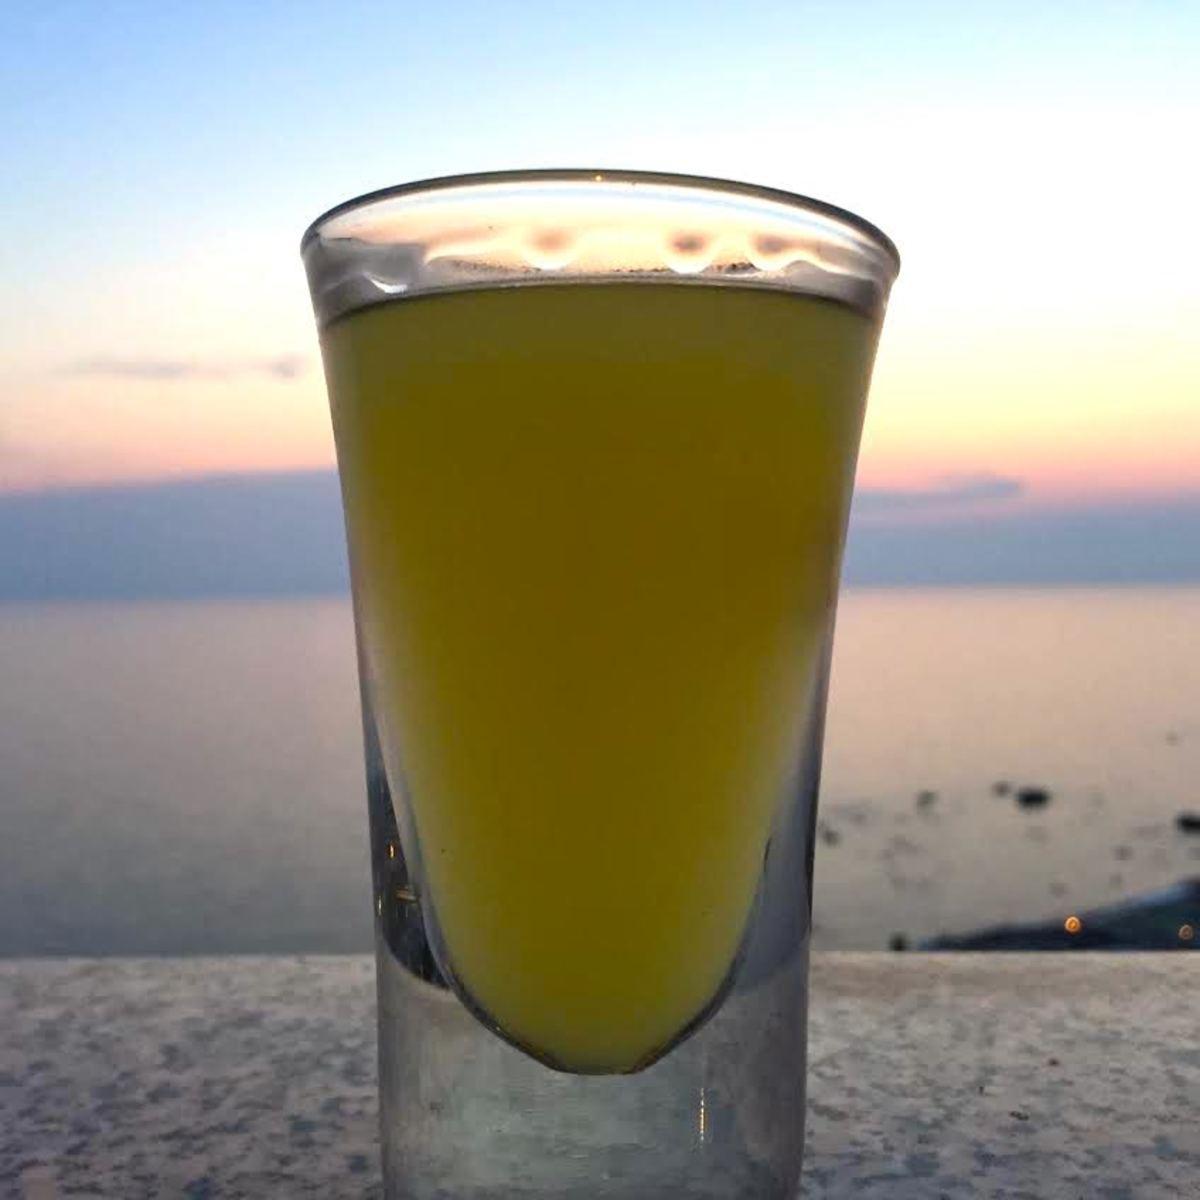 Limoncello produced on the Island of Ischia